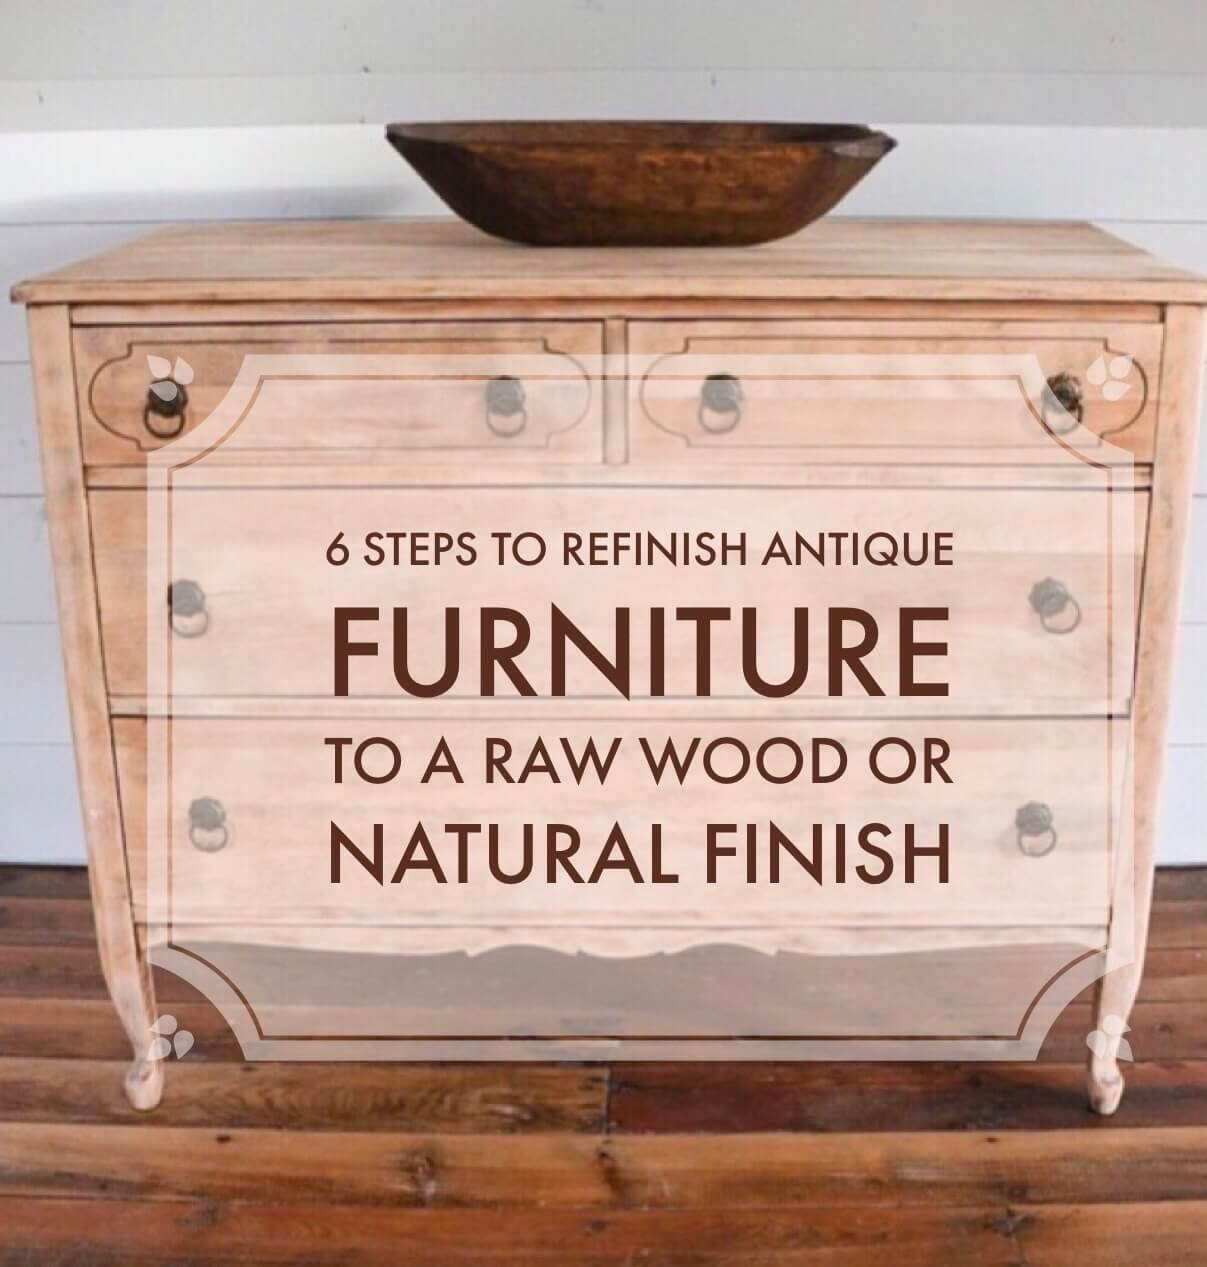 6 Steps to Refinish Antique Furniture to a Natural or Raw Wood Finish